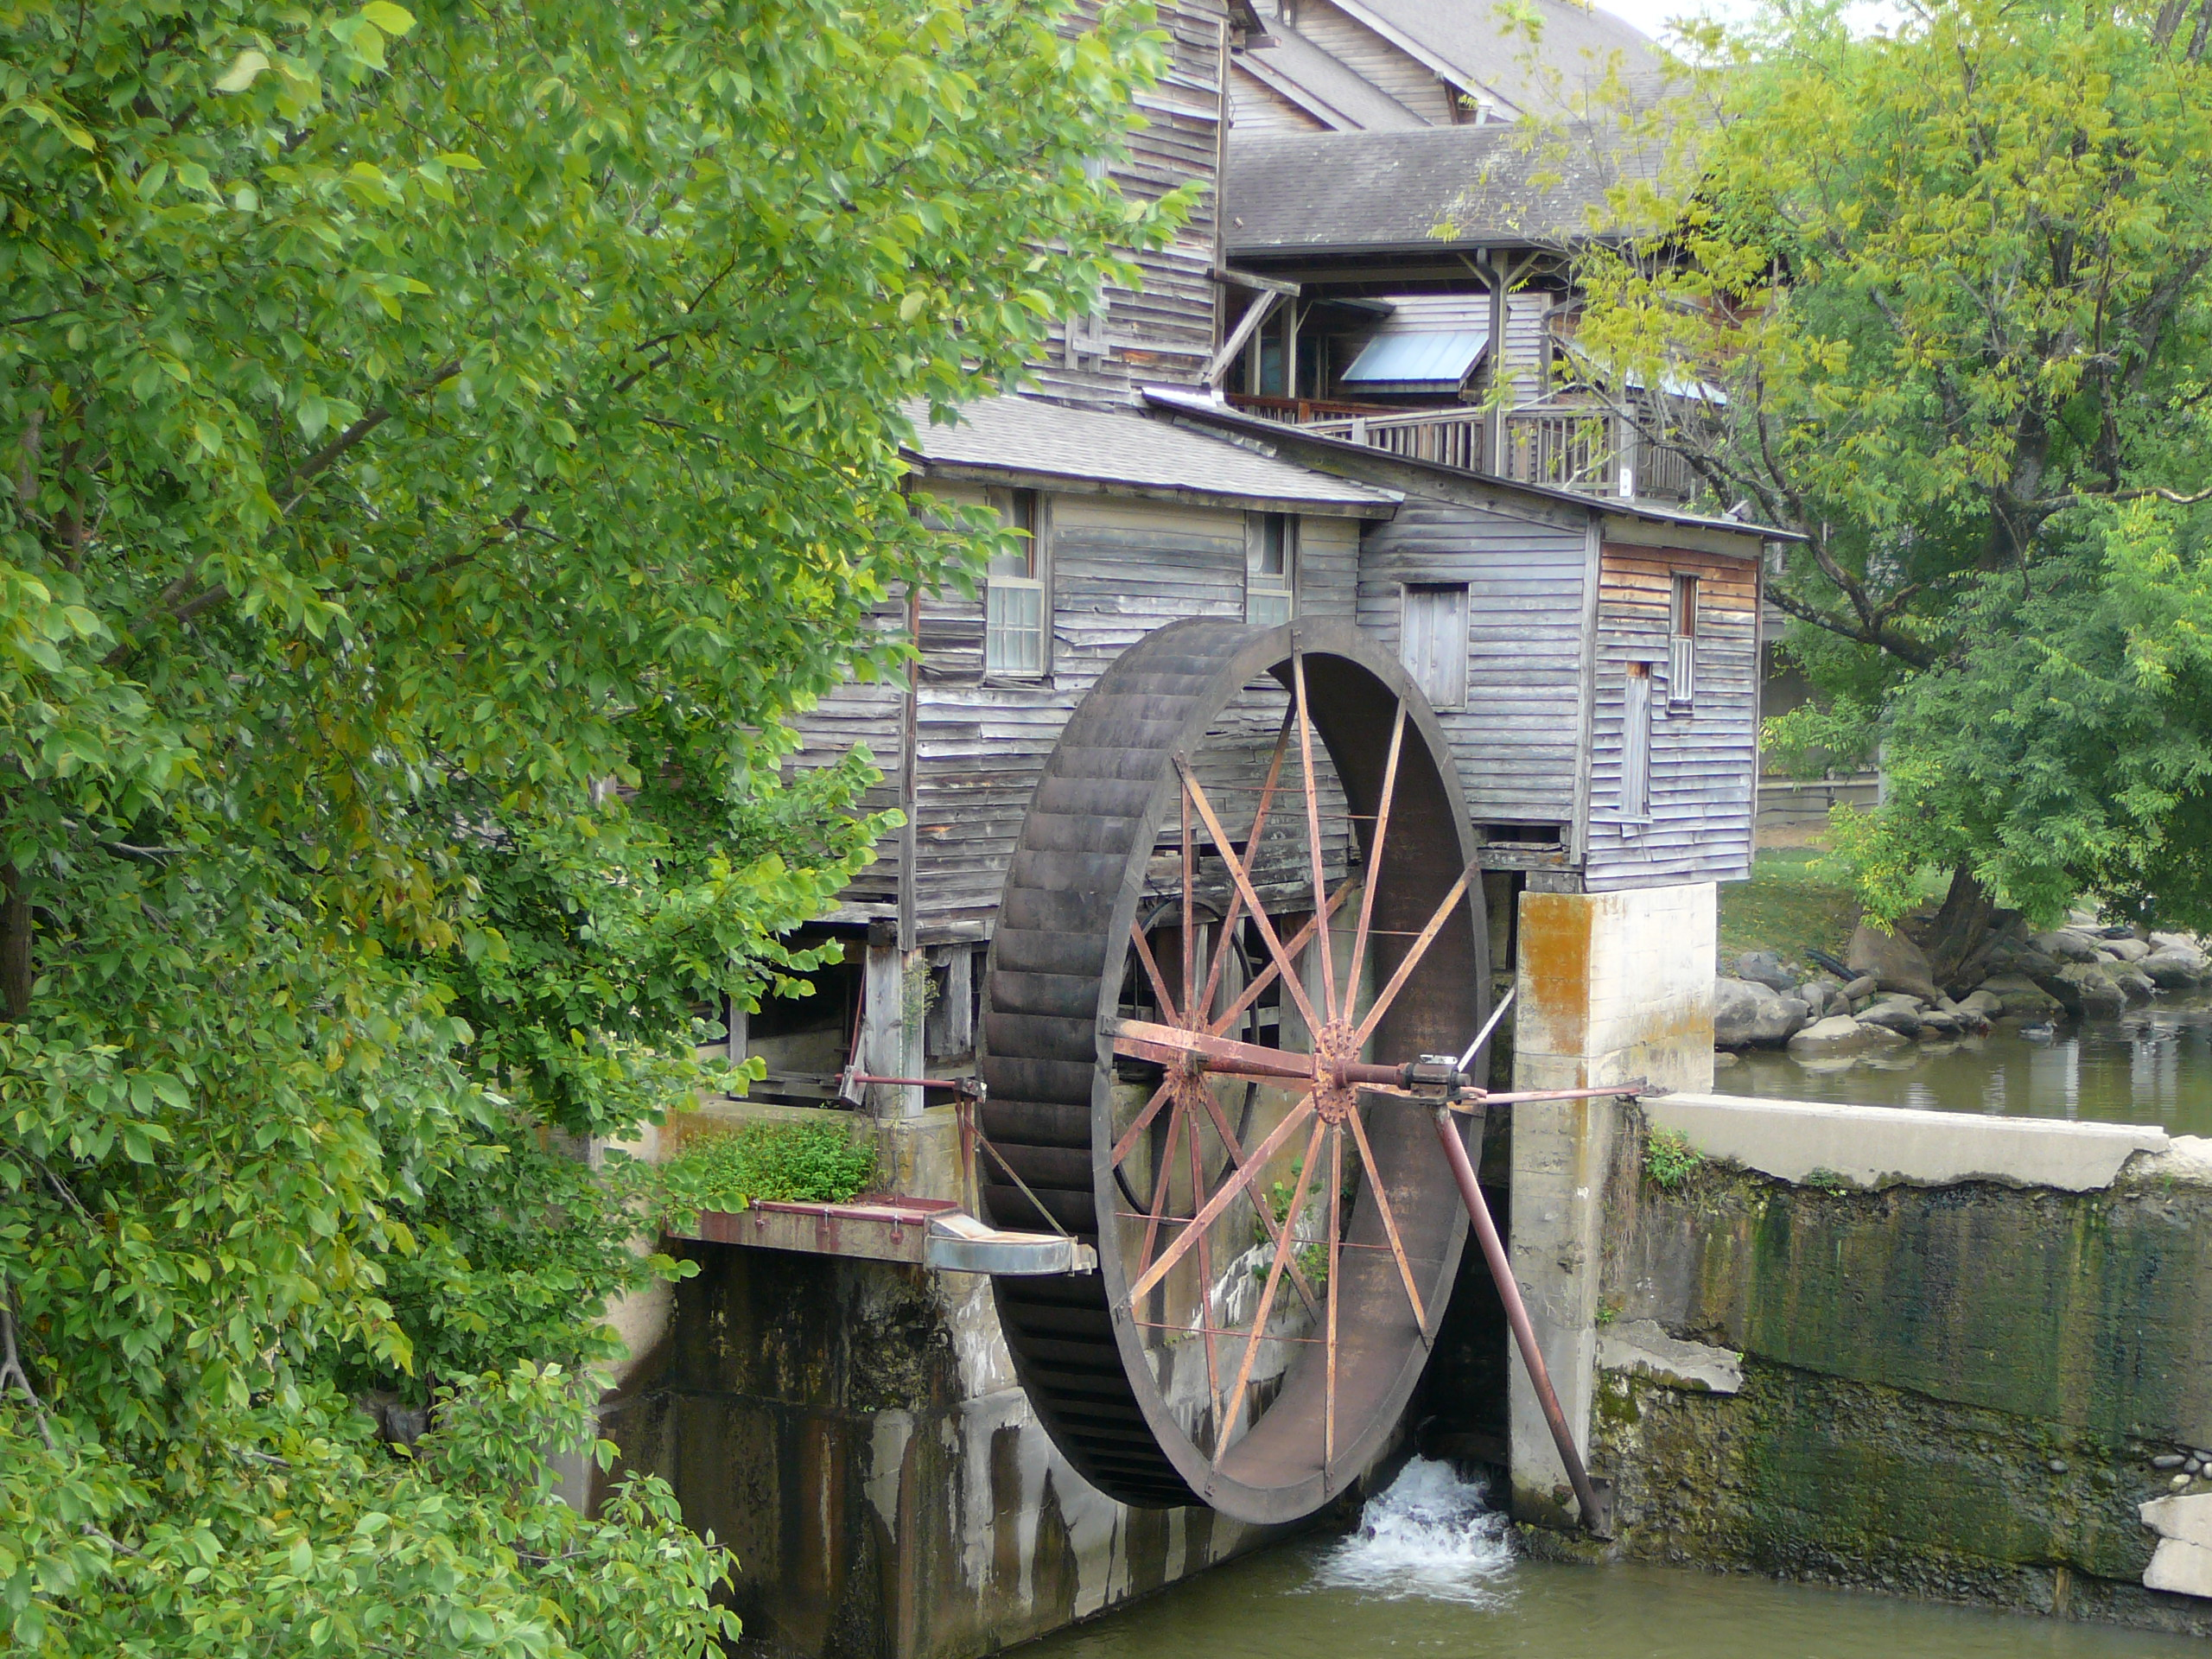 Outside view of Old Mill & wheel